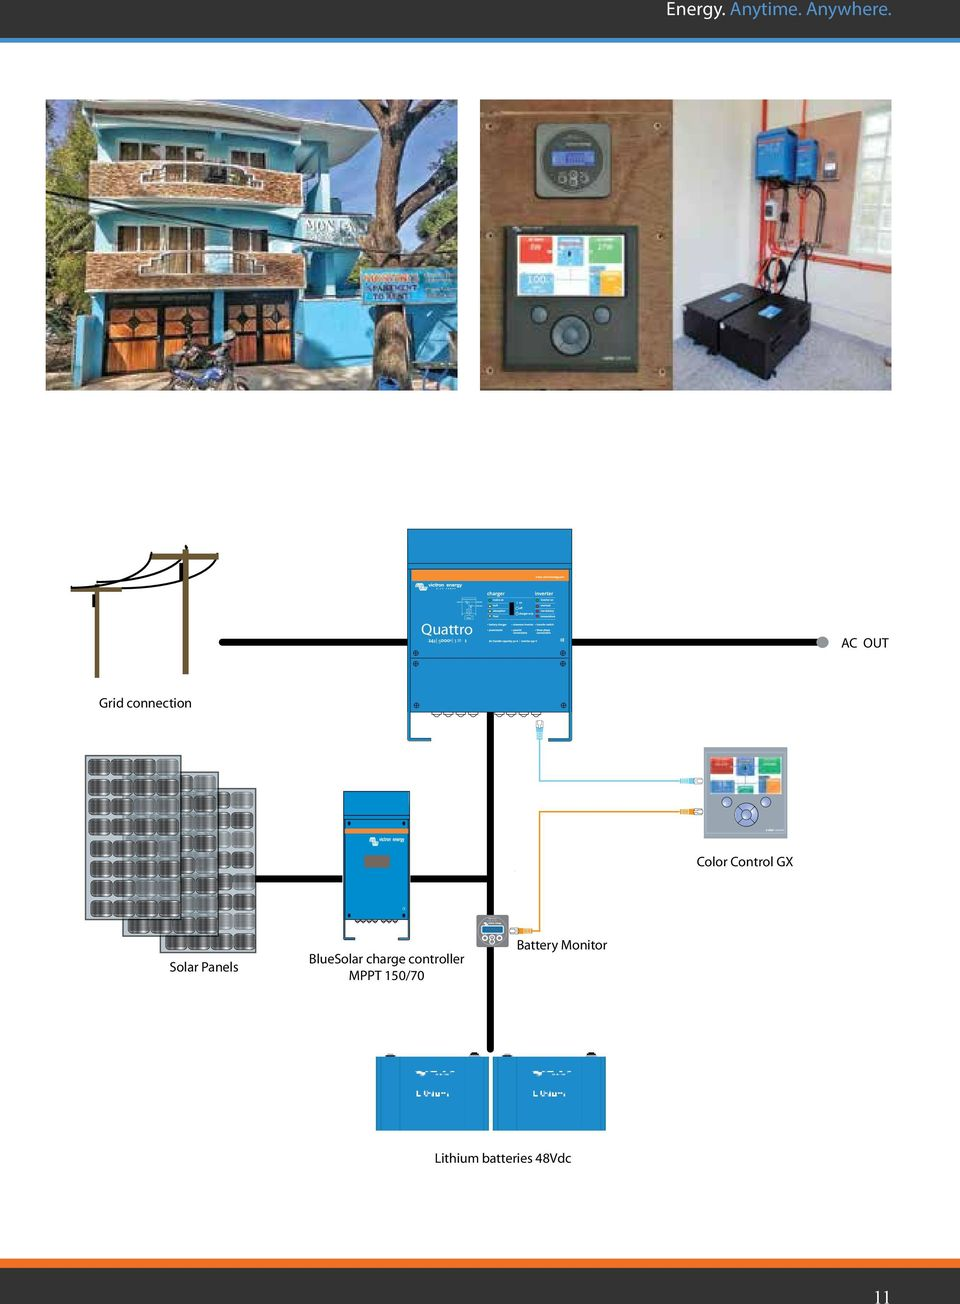 Off Grid Back Up Island Systems Energy Anytime Anywhere Pdf Mppt Controller Wiring Schematic Moreover Solar Charge Panels Bluesolar 150 Battery Monitor Lithium Batteries 48vdc 11 Quattro 5 120 Ac Out Connection Color Control